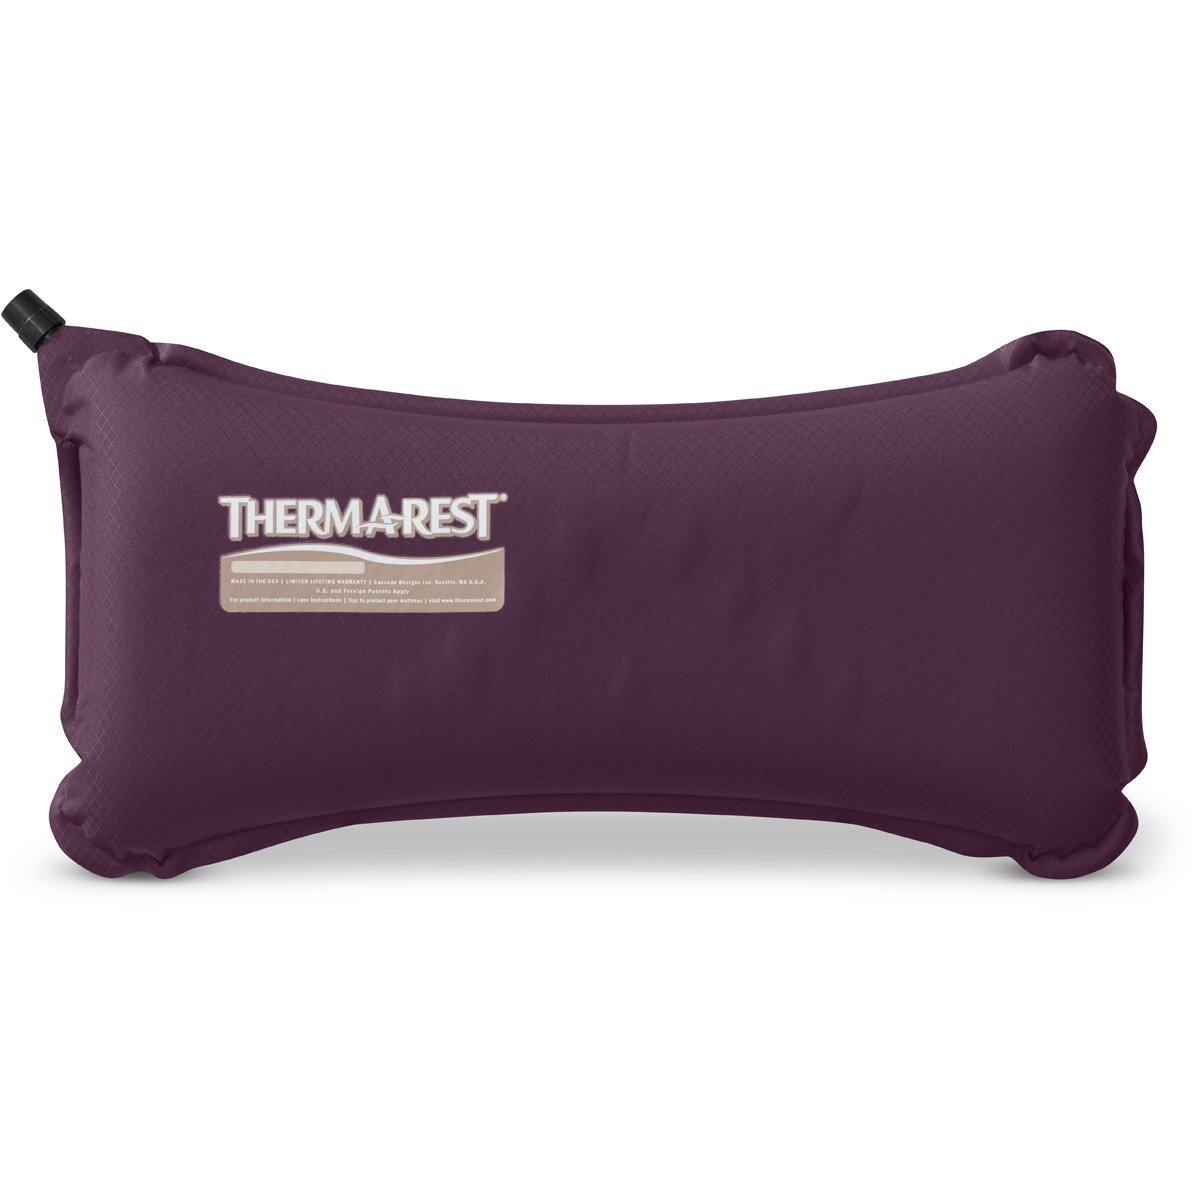 Therm-a-Rest Lumbar Travel Pillow Eggplant 6437